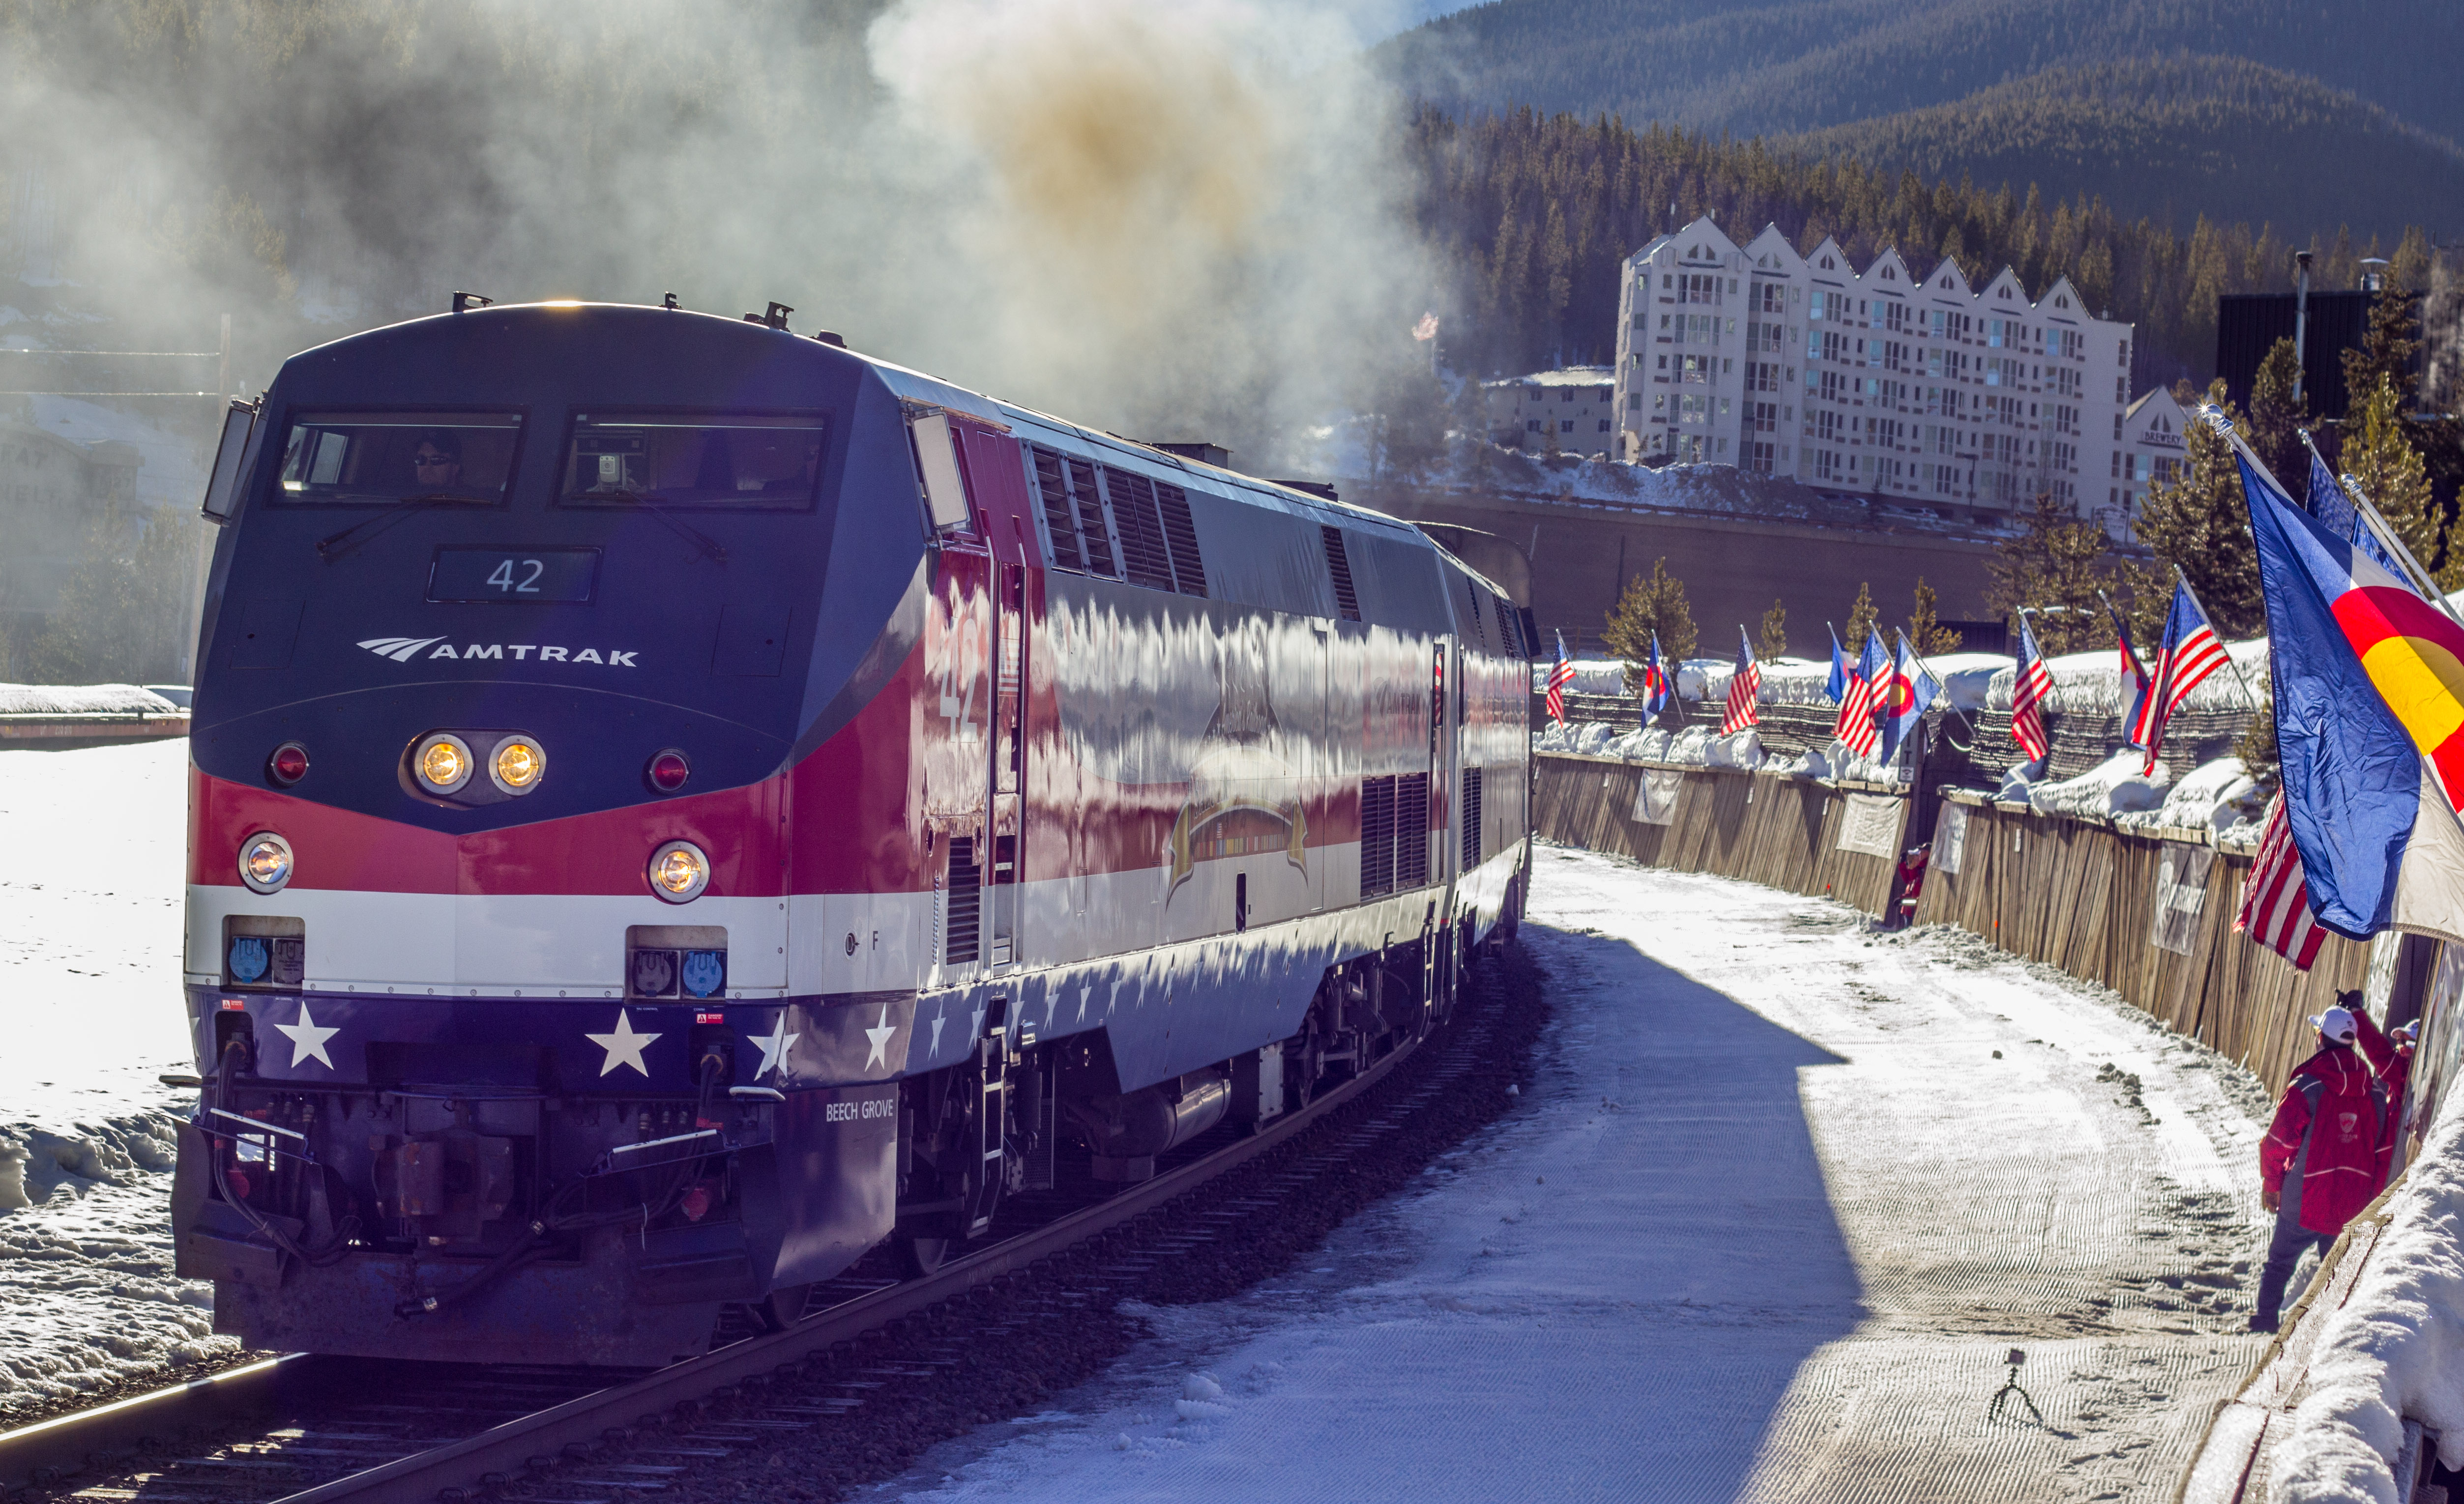 Winter Park Express Ski Train | VISIT DENVER